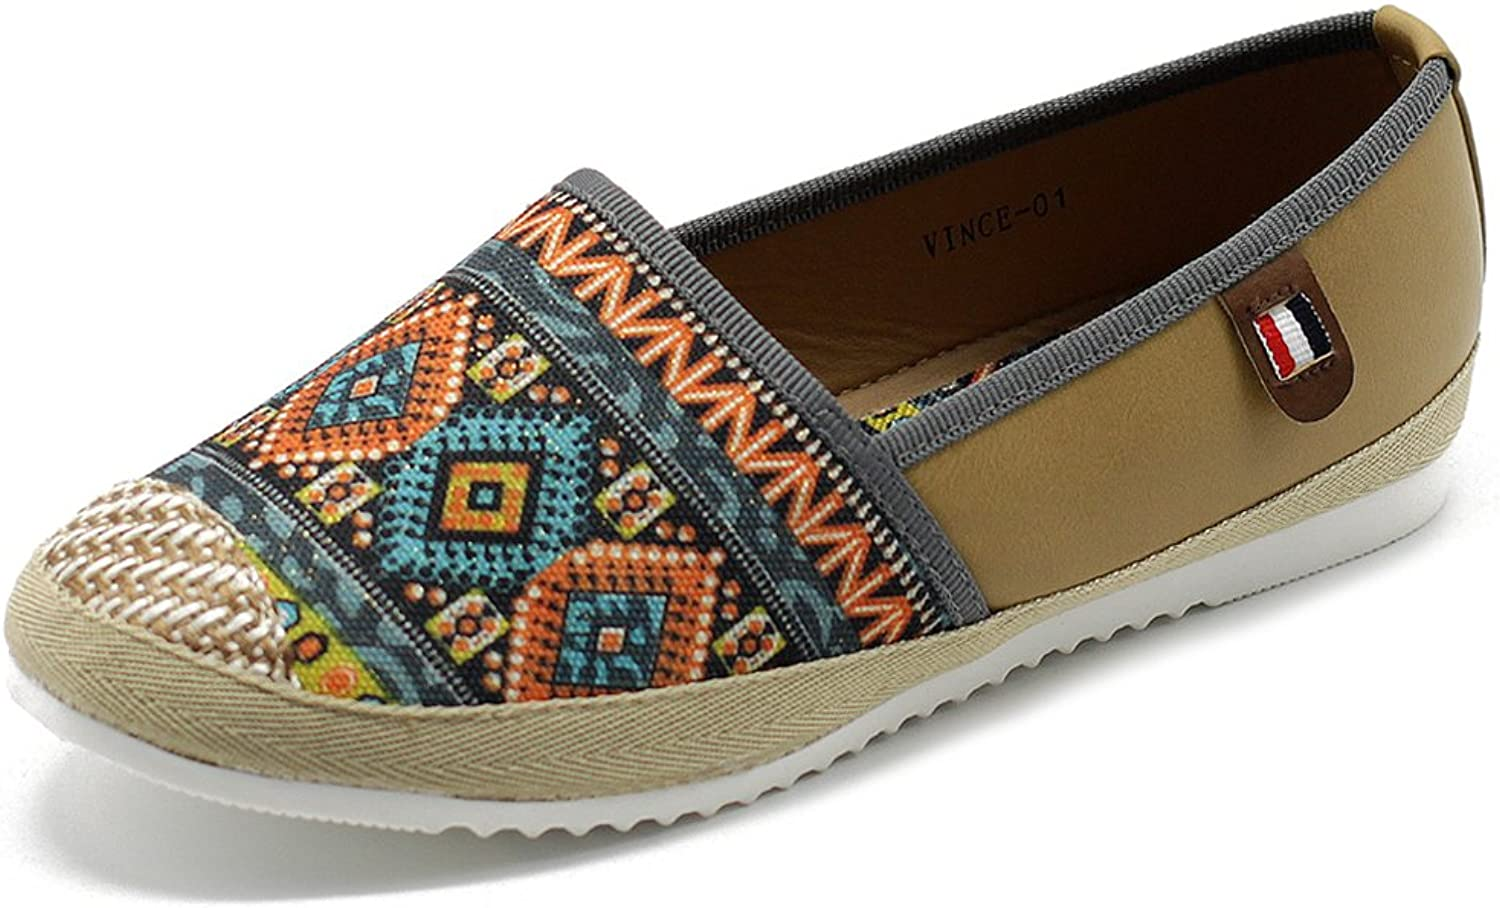 Ollio Womens shoes Slip On Ethnic Floral Tribal Sneaker Canvas Flats